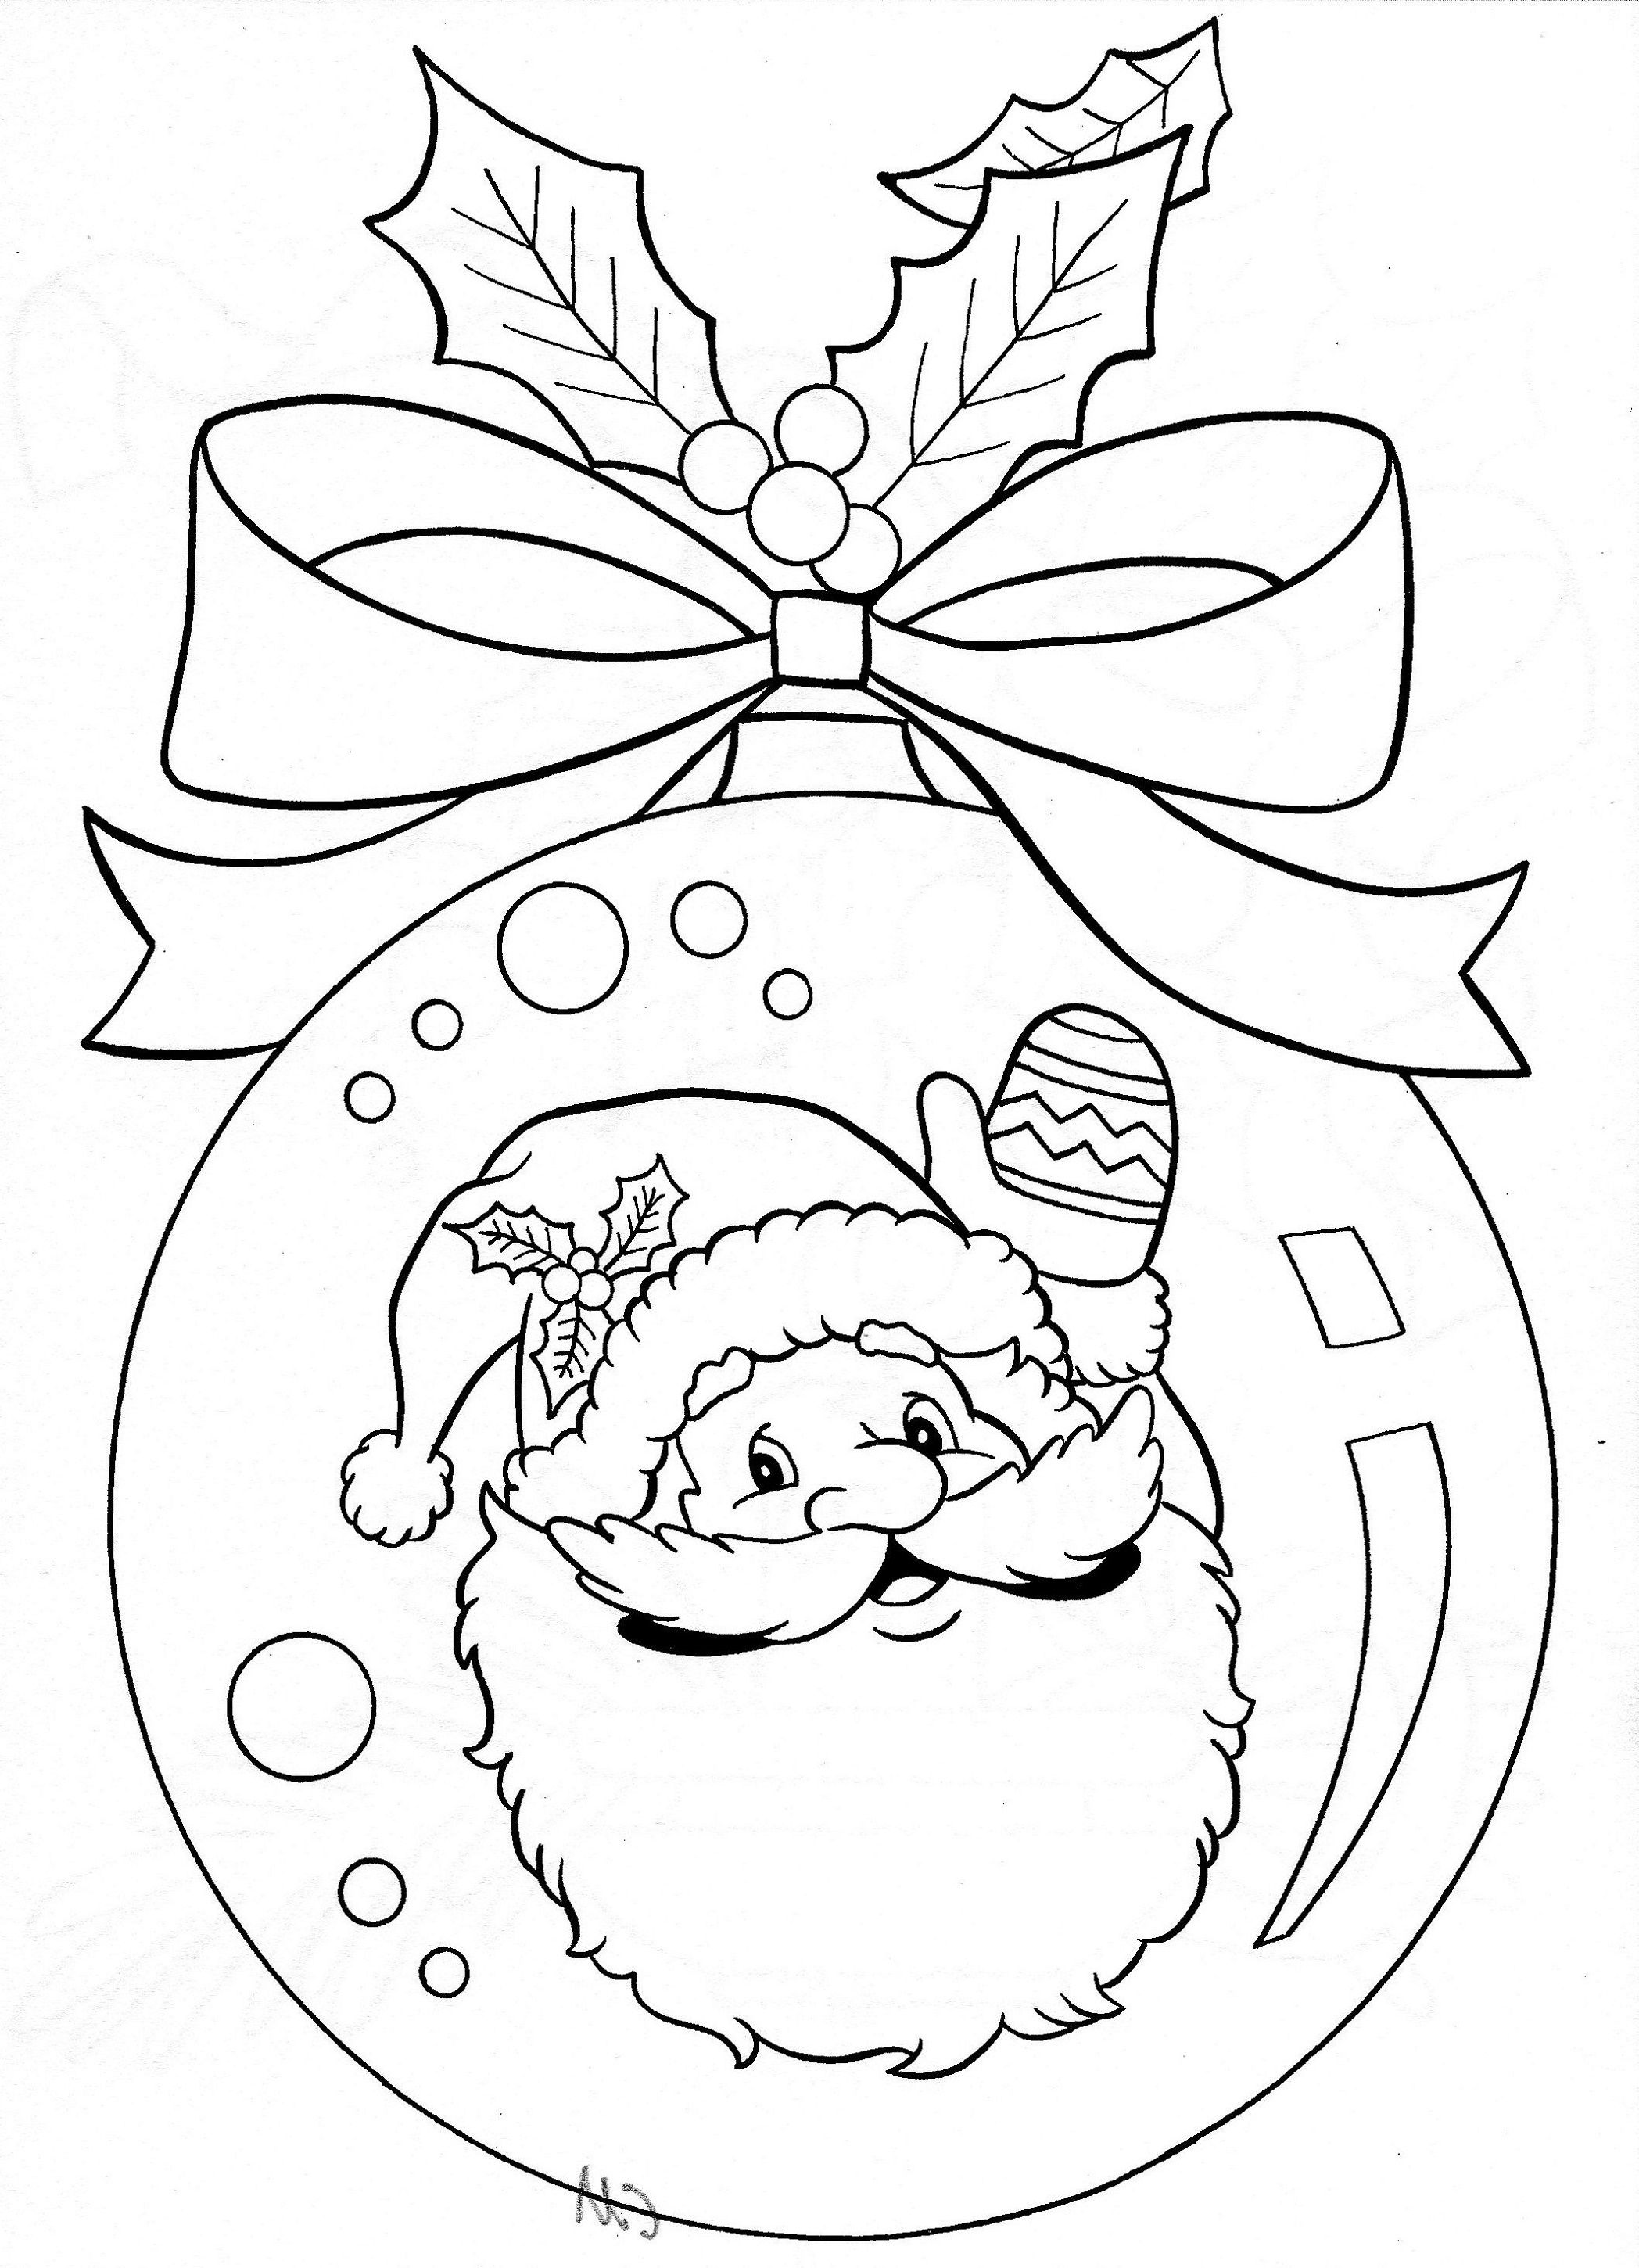 Christmas Mistletoe Coloring Pages For Kids